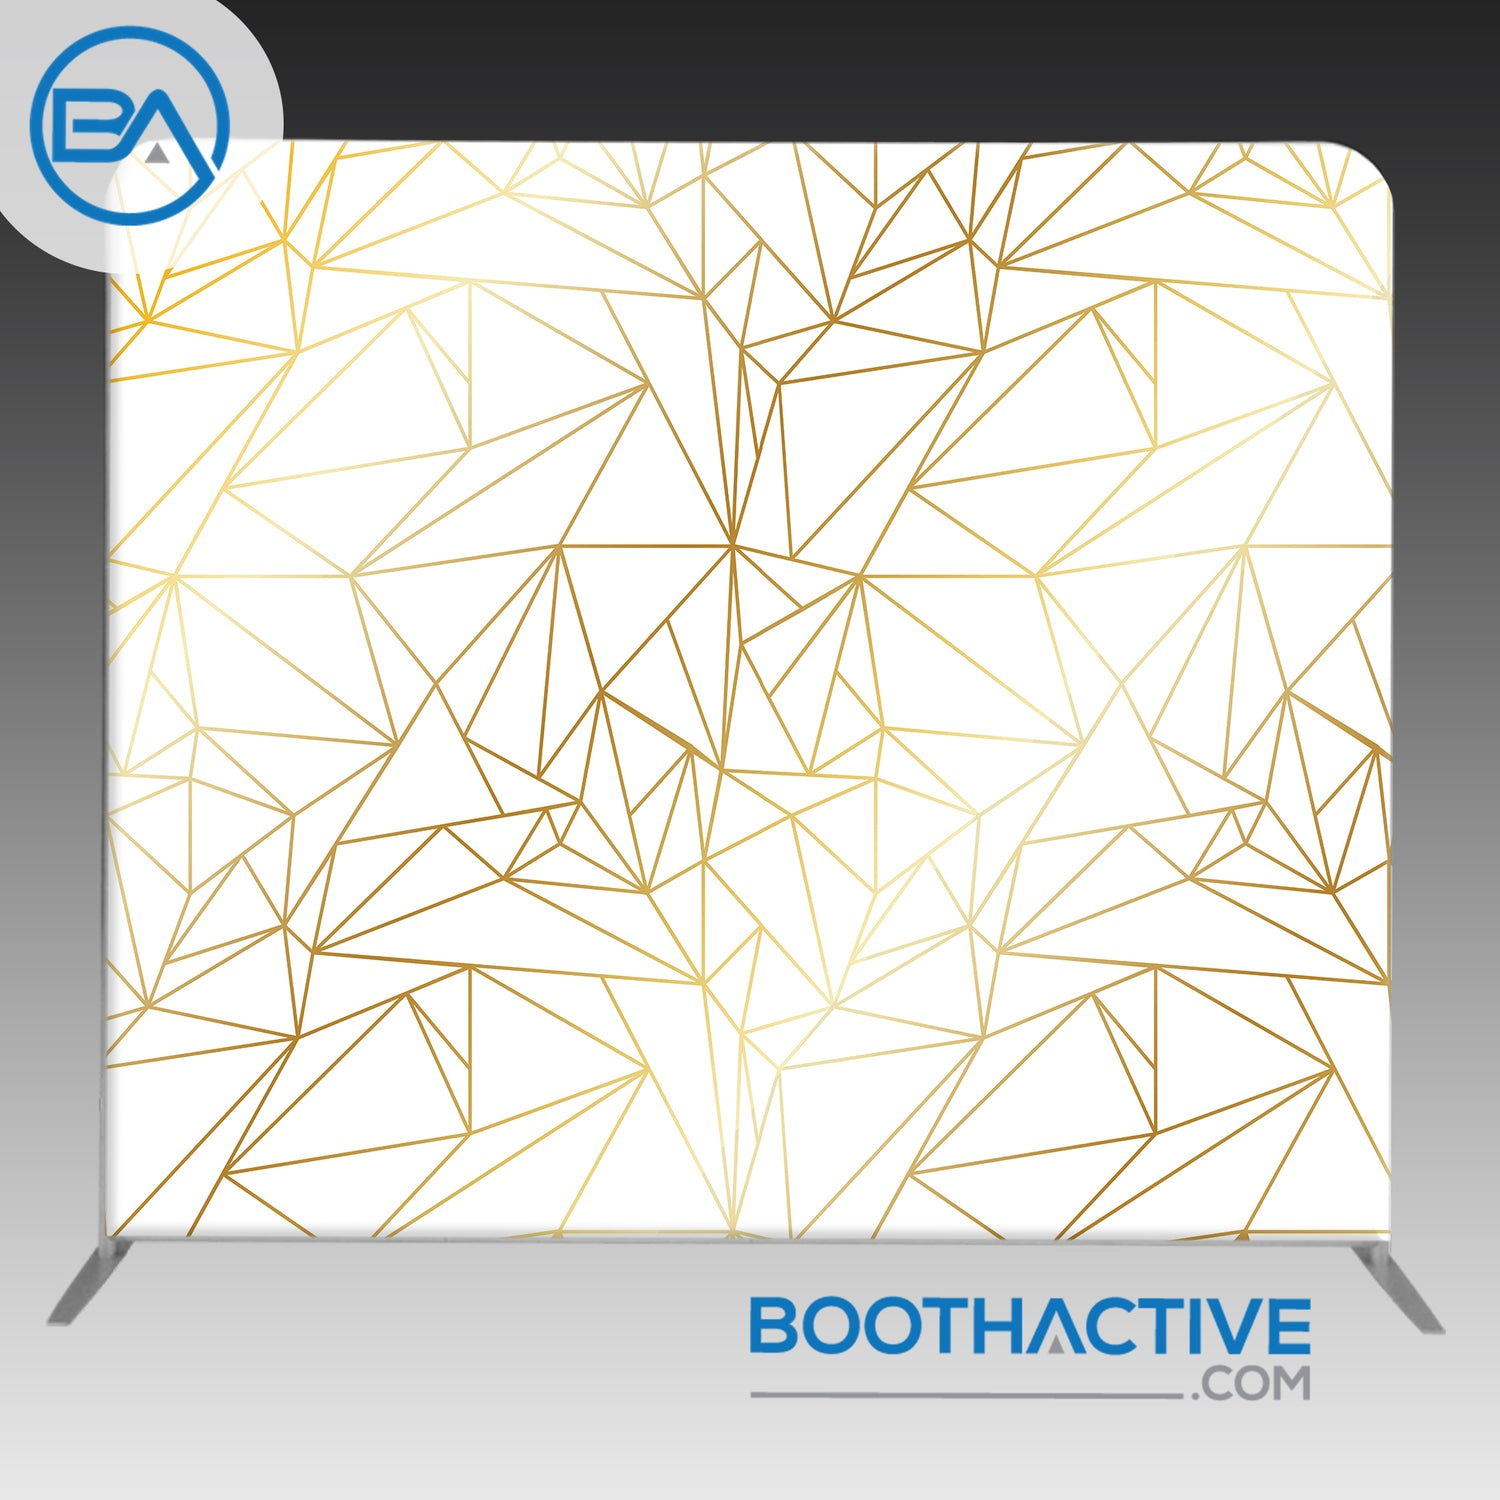 8' x 8' Backdrop - Geometric - Gold 3